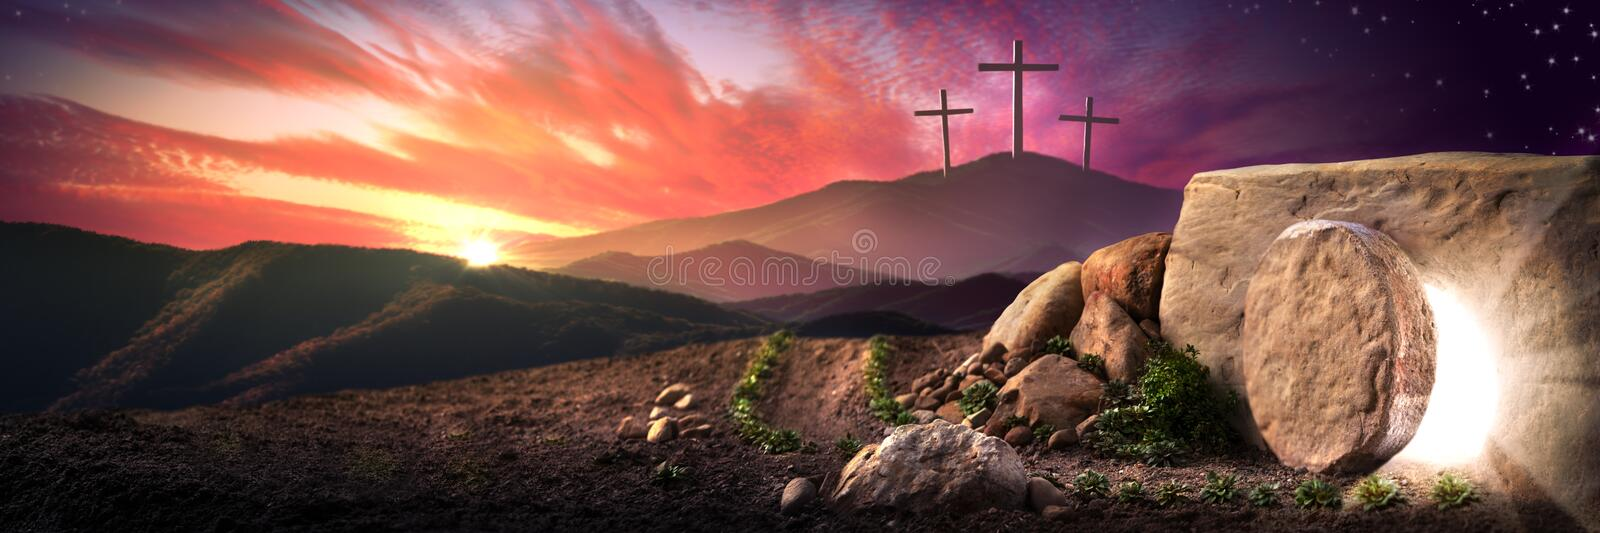 The Resurrection Day. Empty Tomb Of Jesus Christ At Sunrise With Three Crosses In The Distance - Resurrection Concept royalty free stock photography